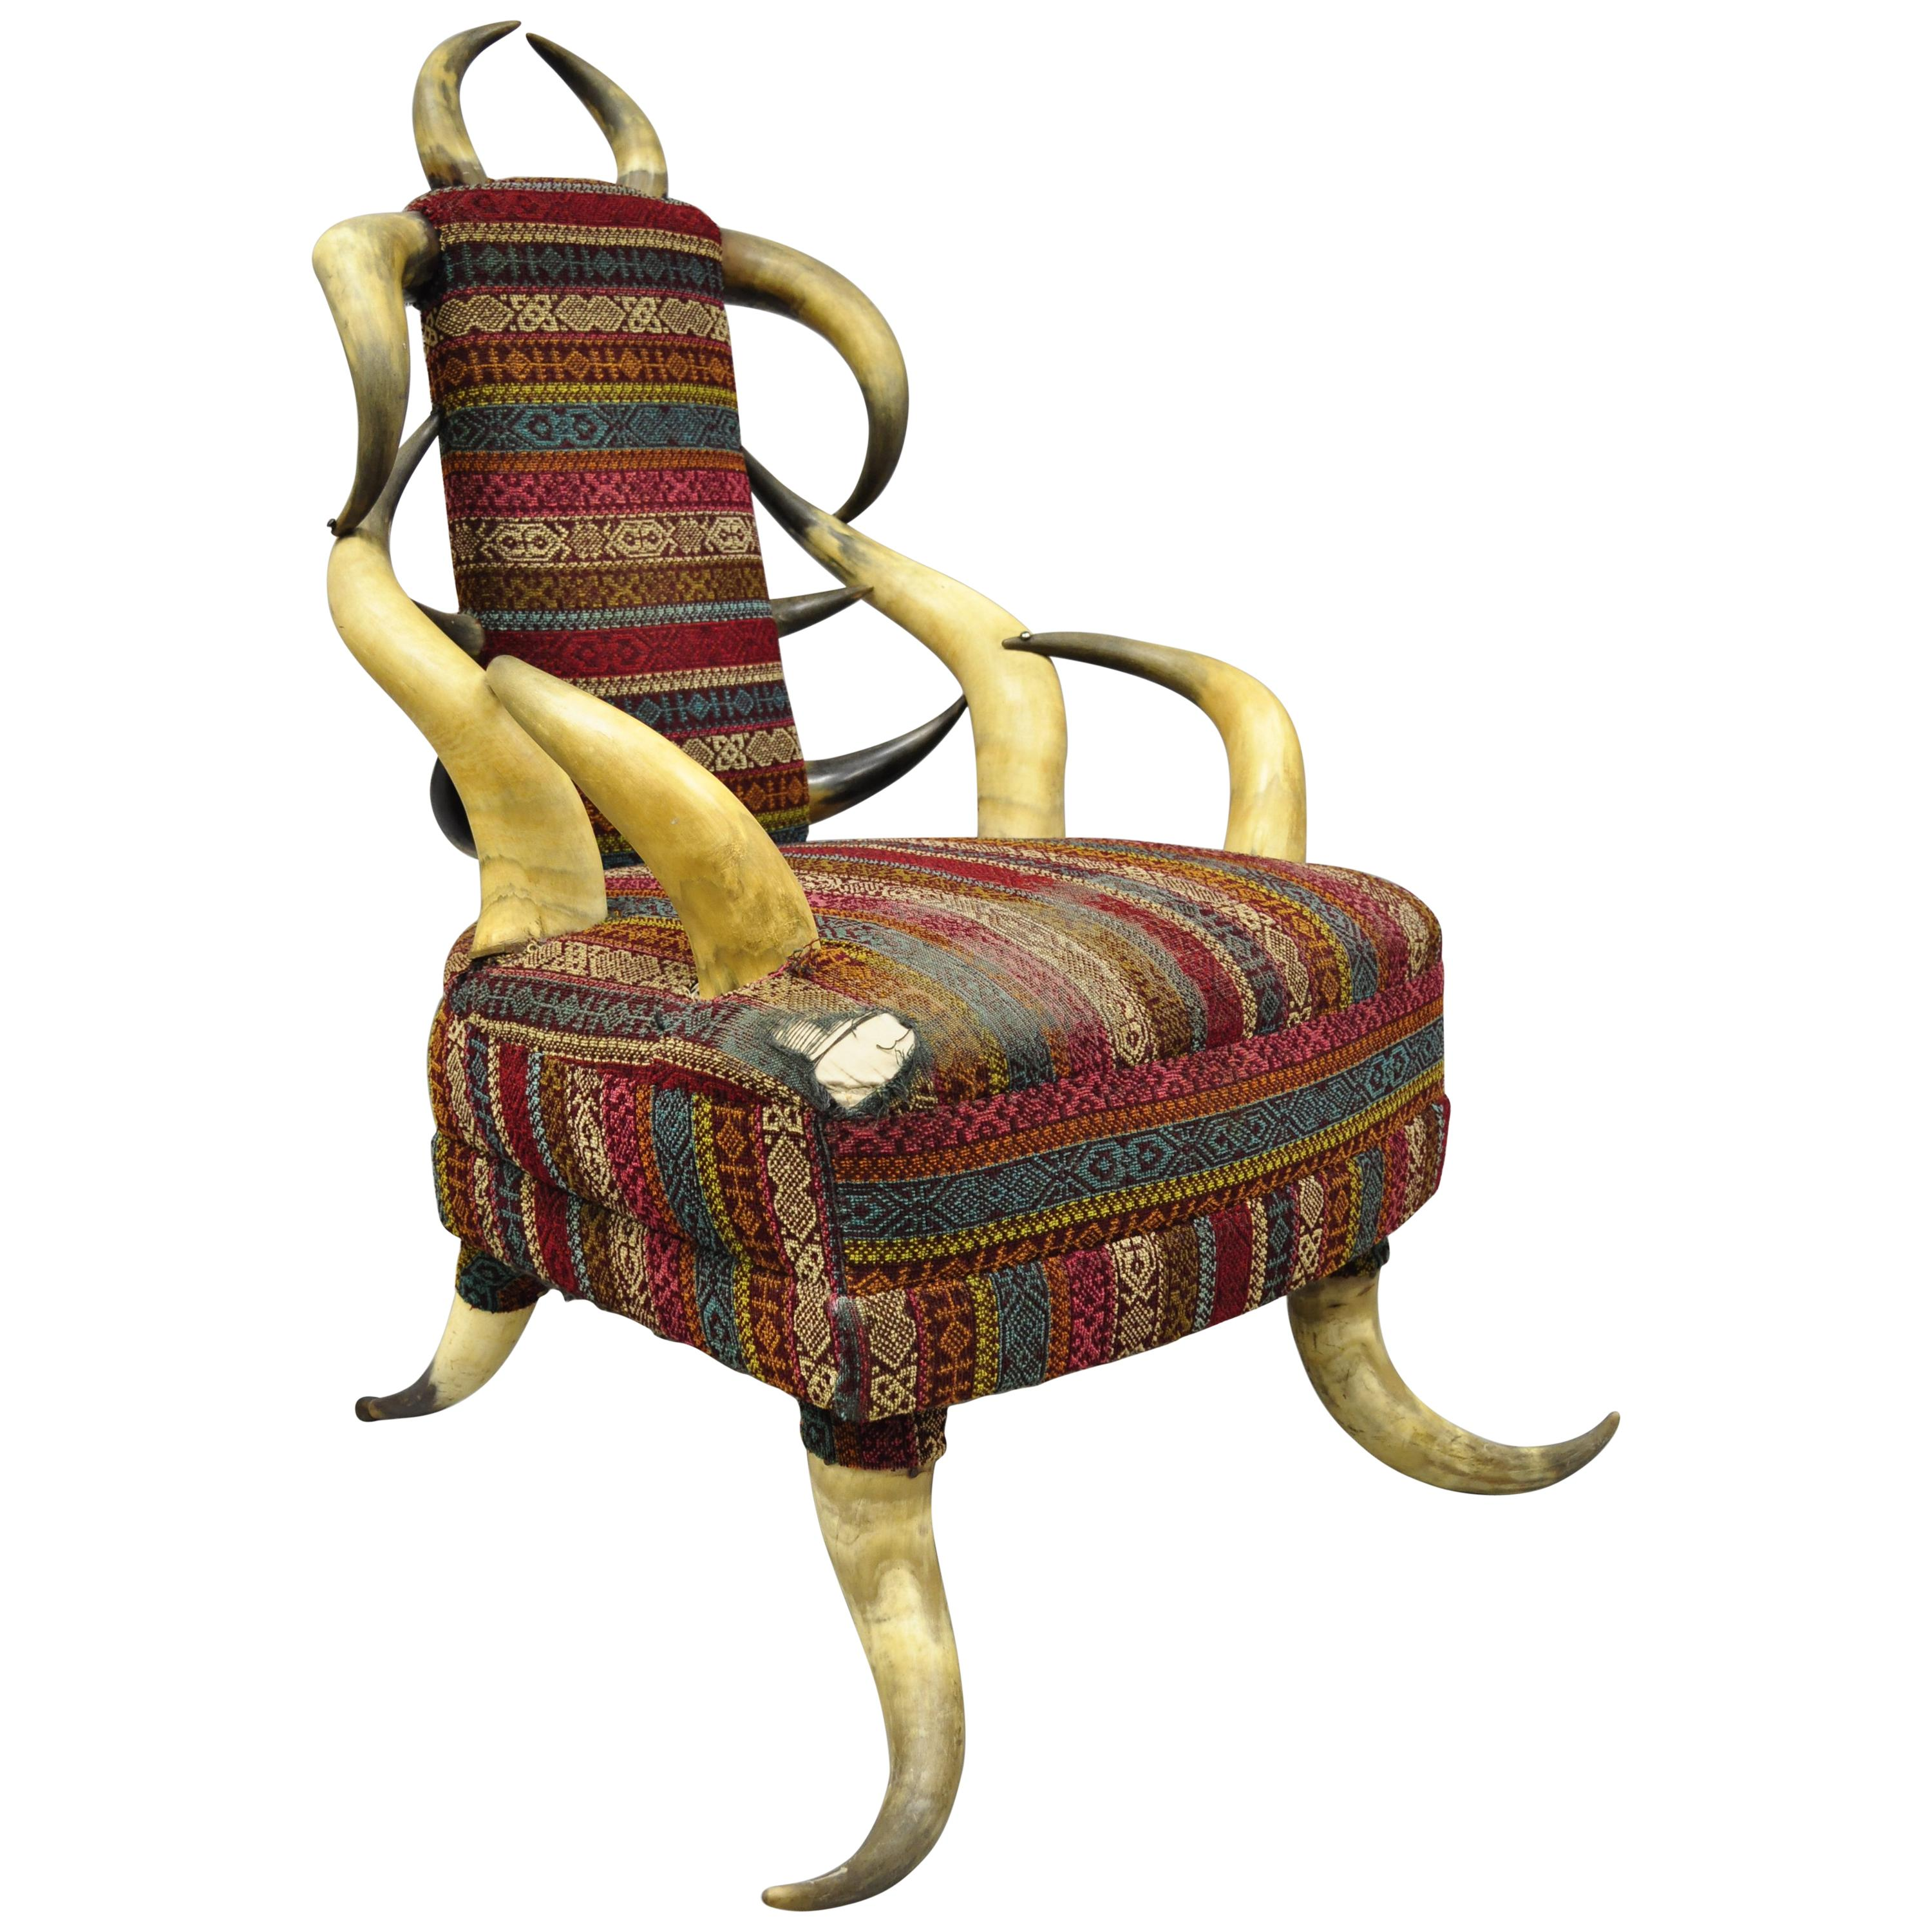 Early 20th Century Steer Horn Parlor Chair